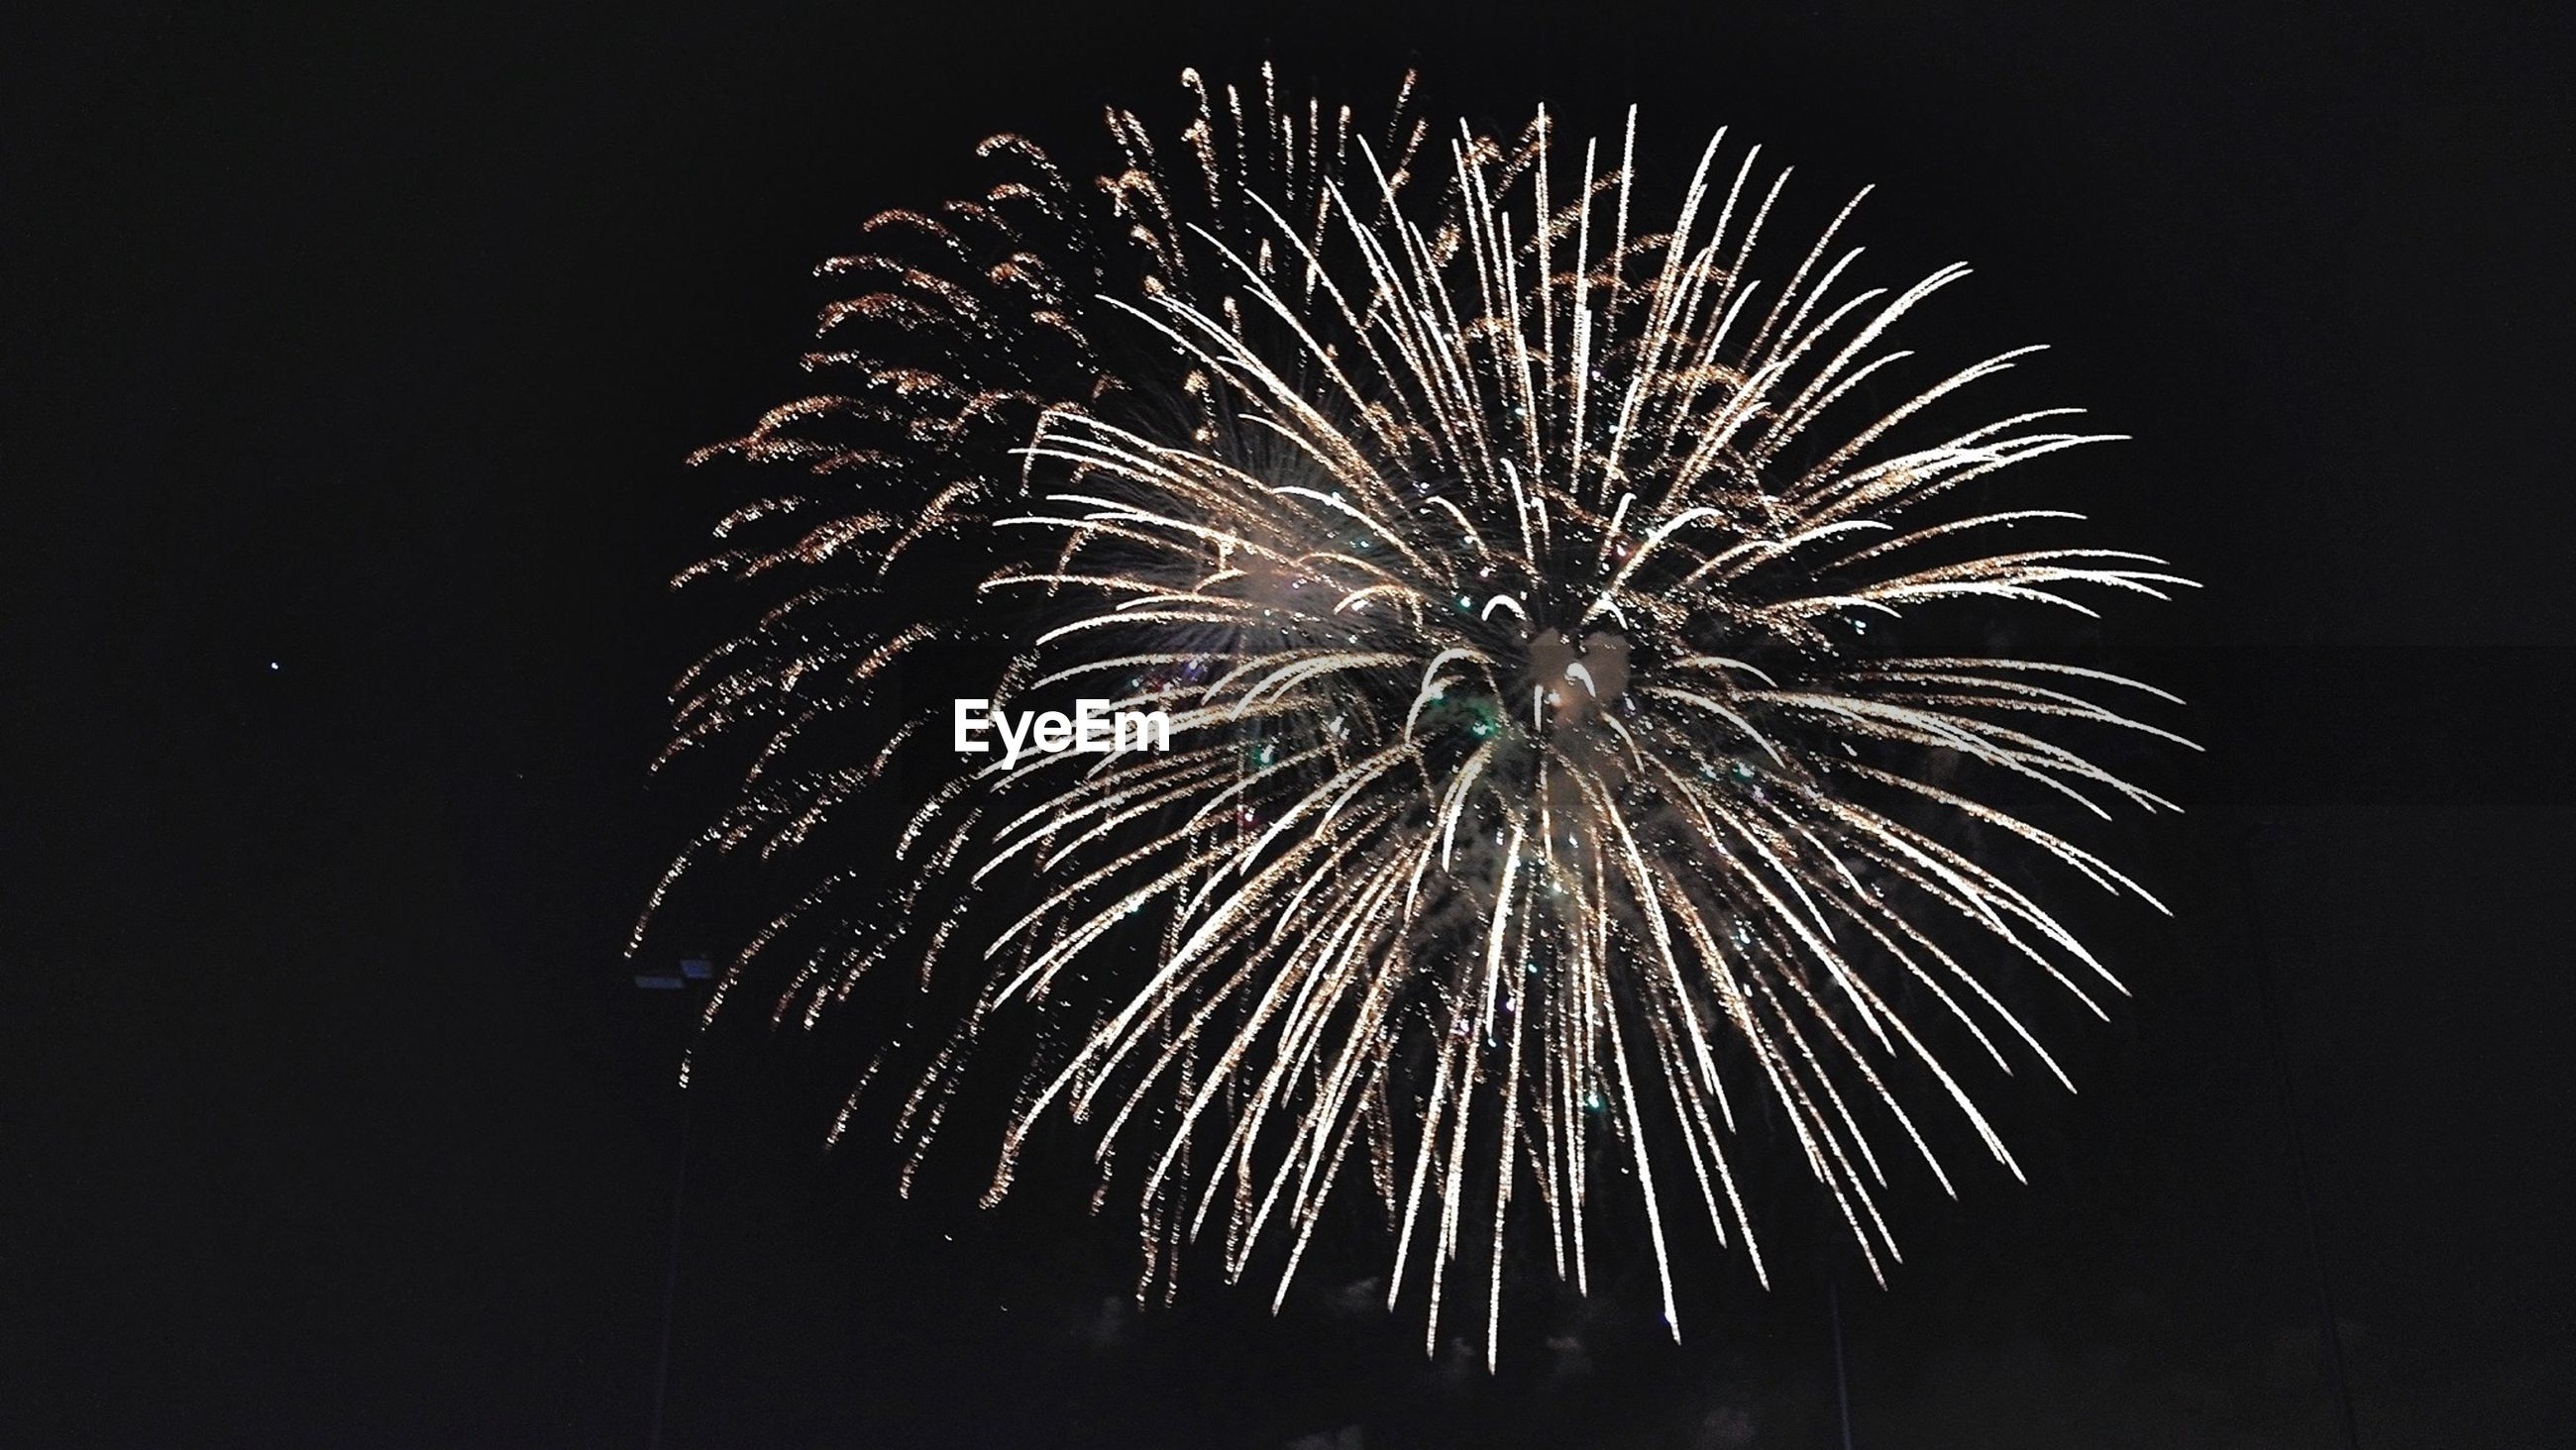 Firework display in clear sky during night